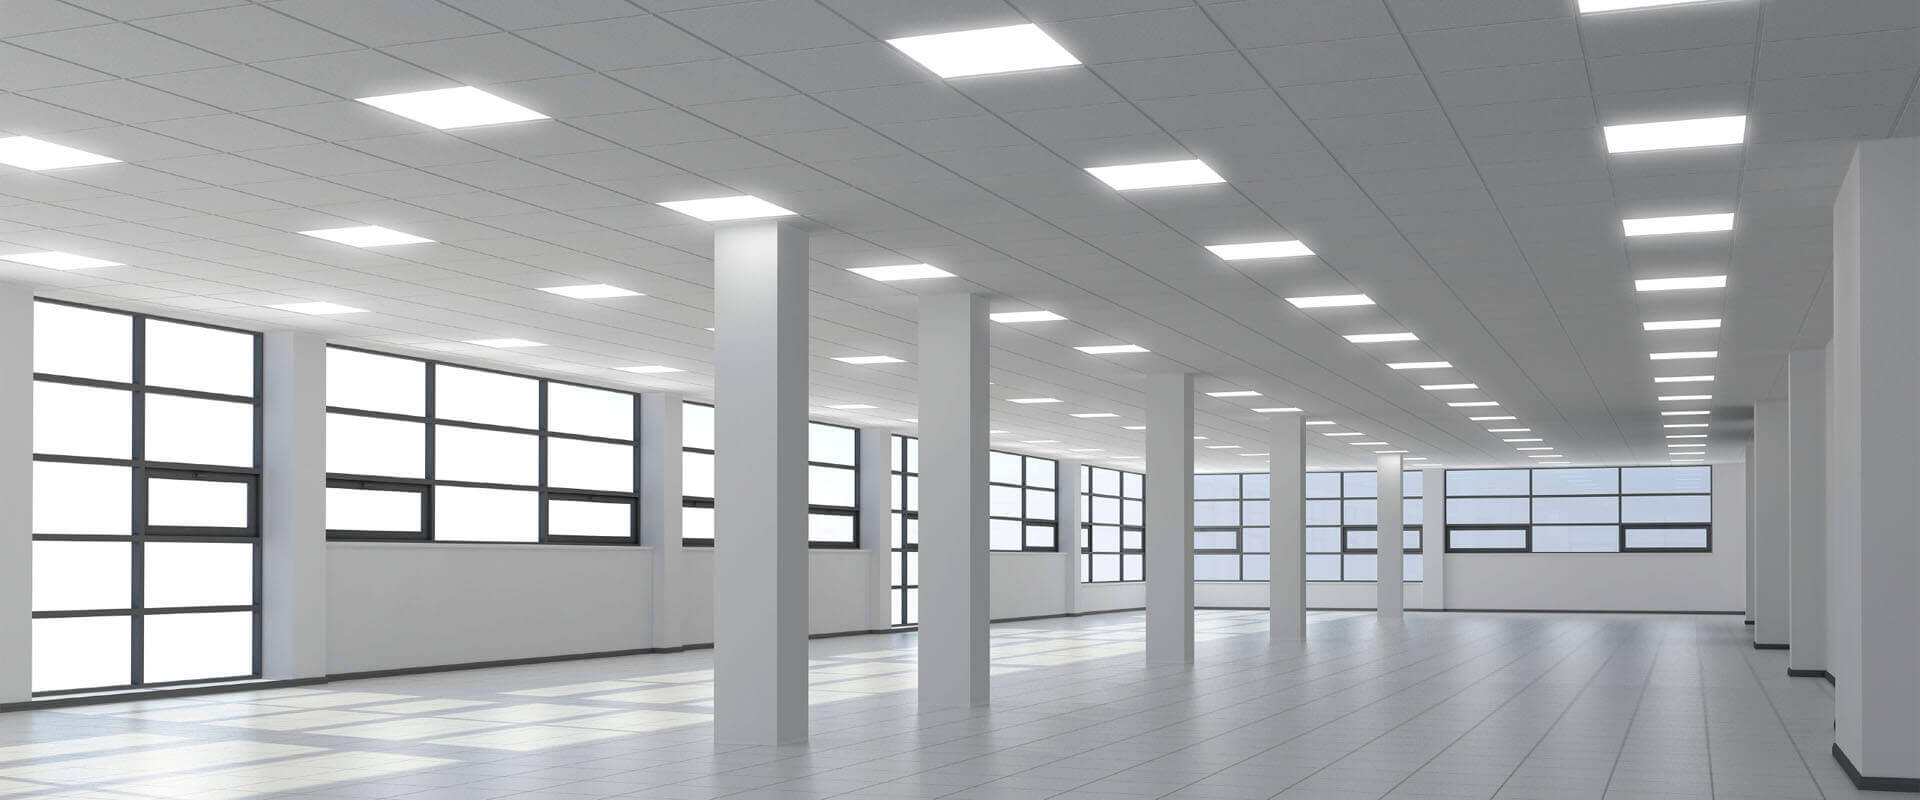 LED lighting services in Colchester